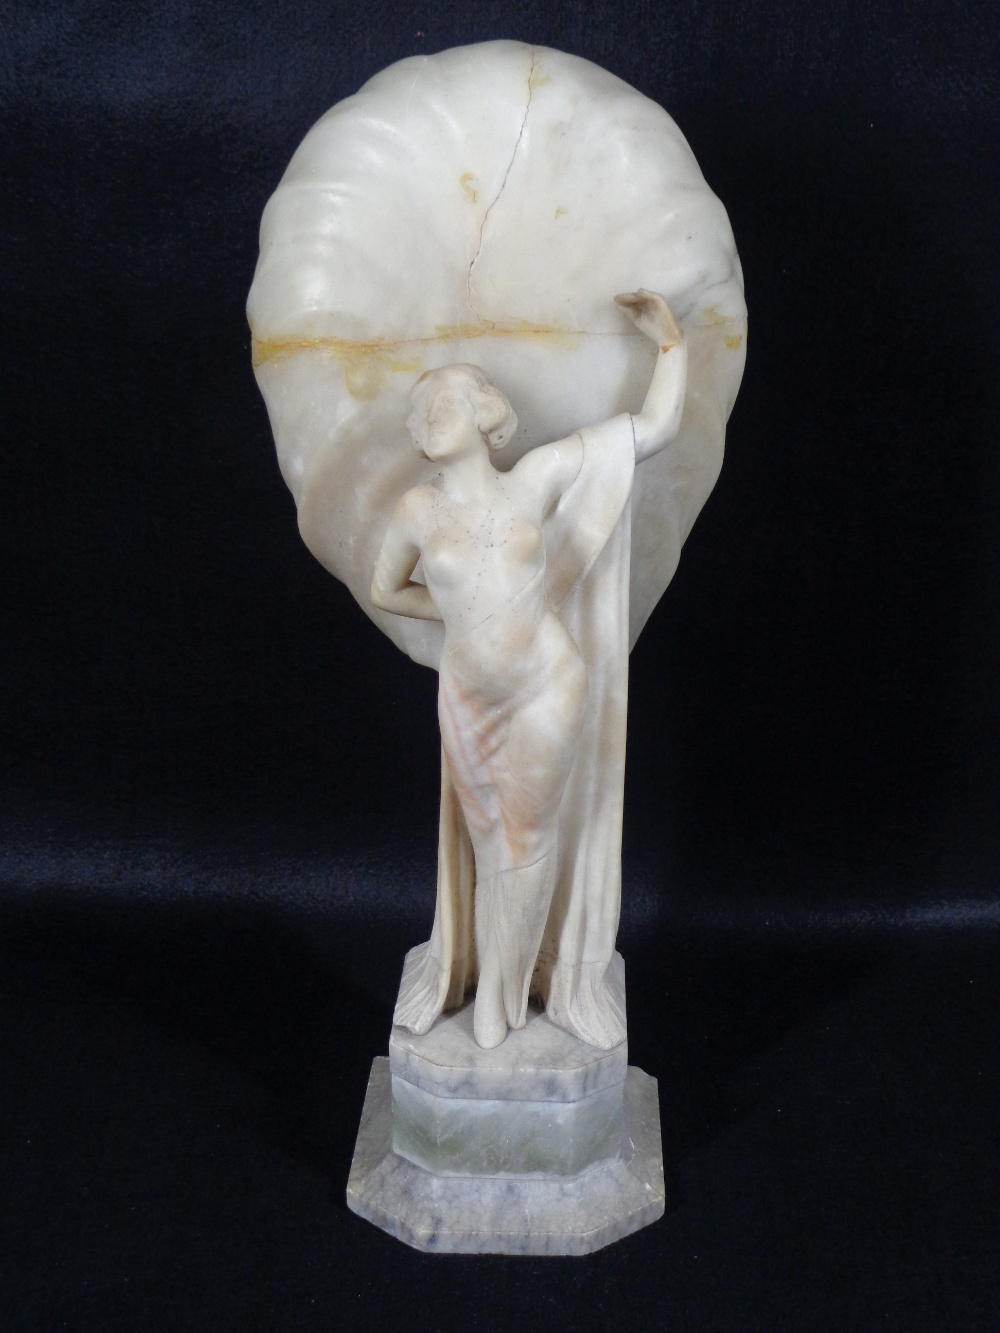 ART DECO CARVED ALABASTER LADY FIGURINE TABLE LAMP (repaired damages), 50cms H